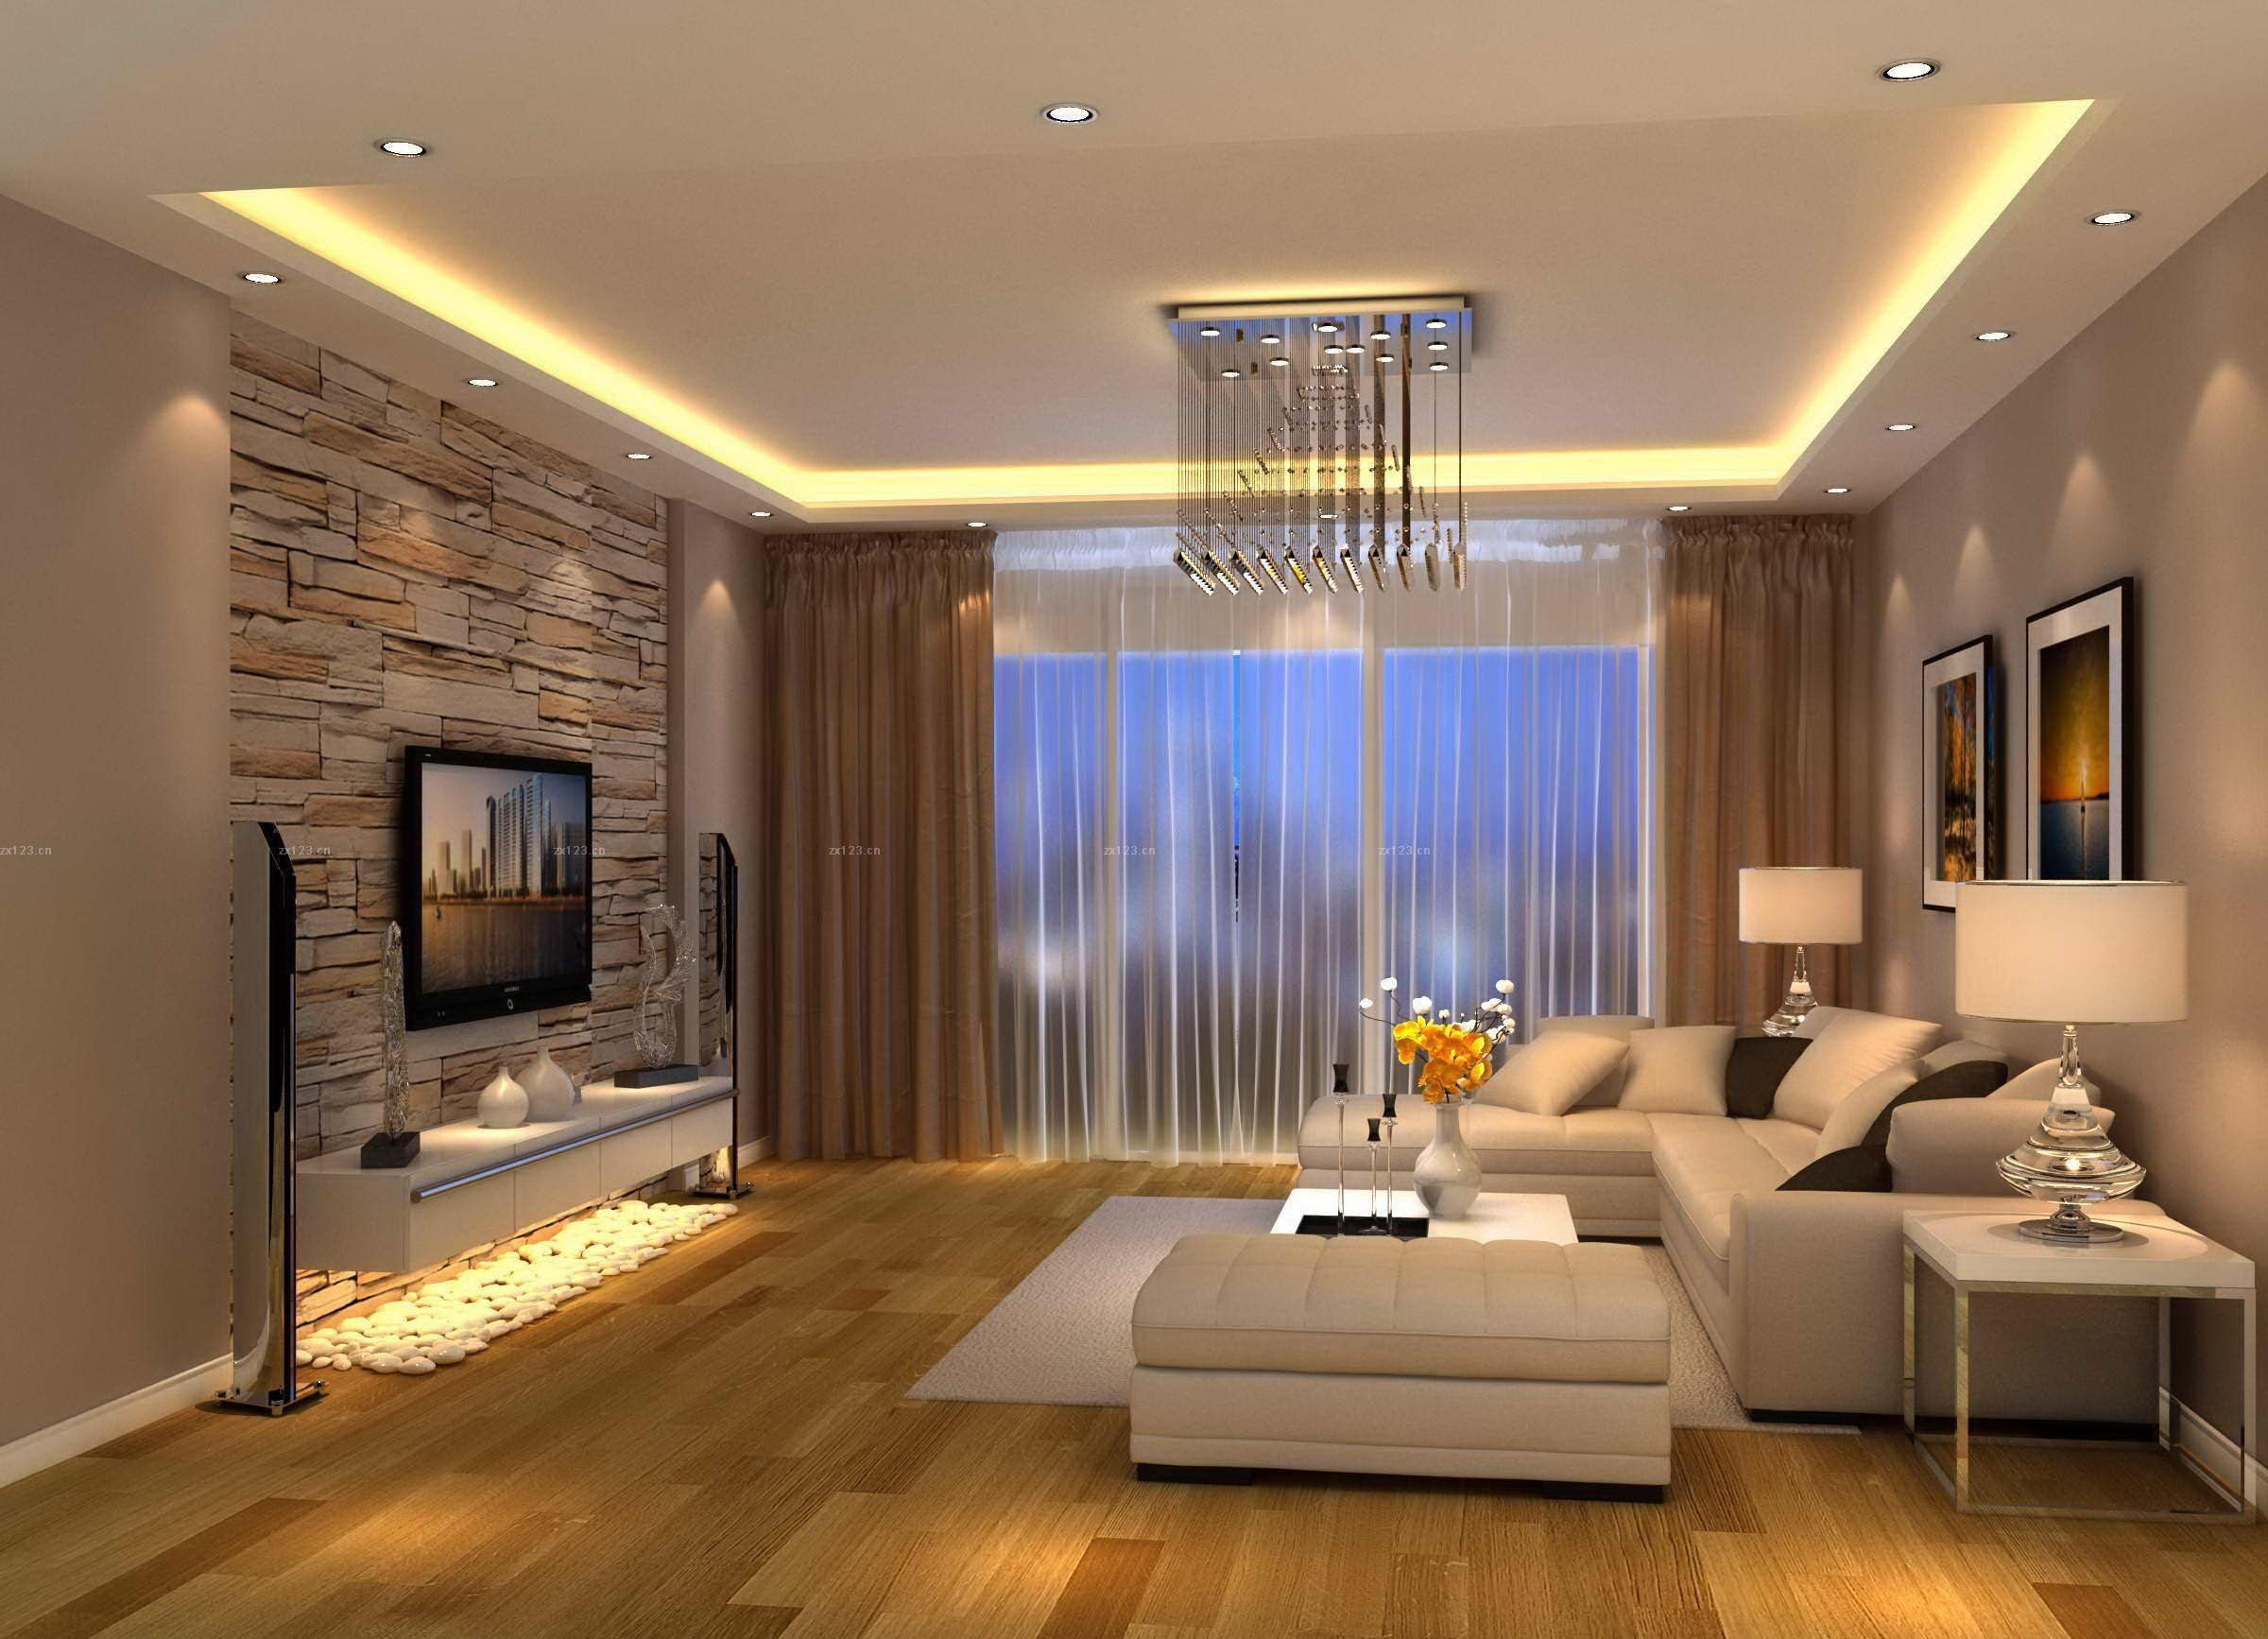 home design ideas room index about living interior all minimalist